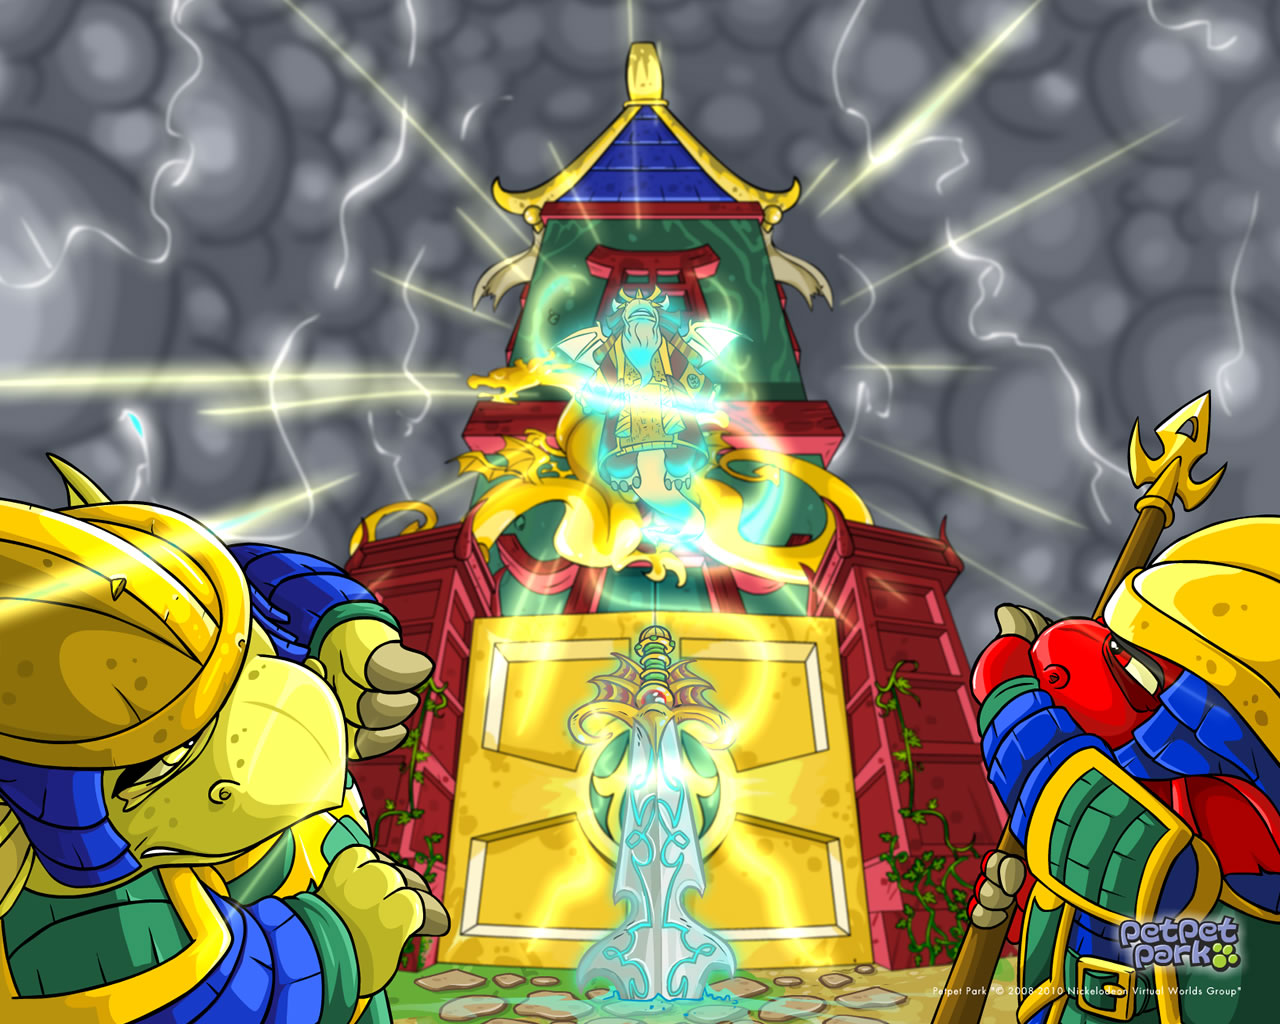 http://images.neopets.com/petpetpark/wallpapers/cyodrake_temple_blast_1280x1024.jpg